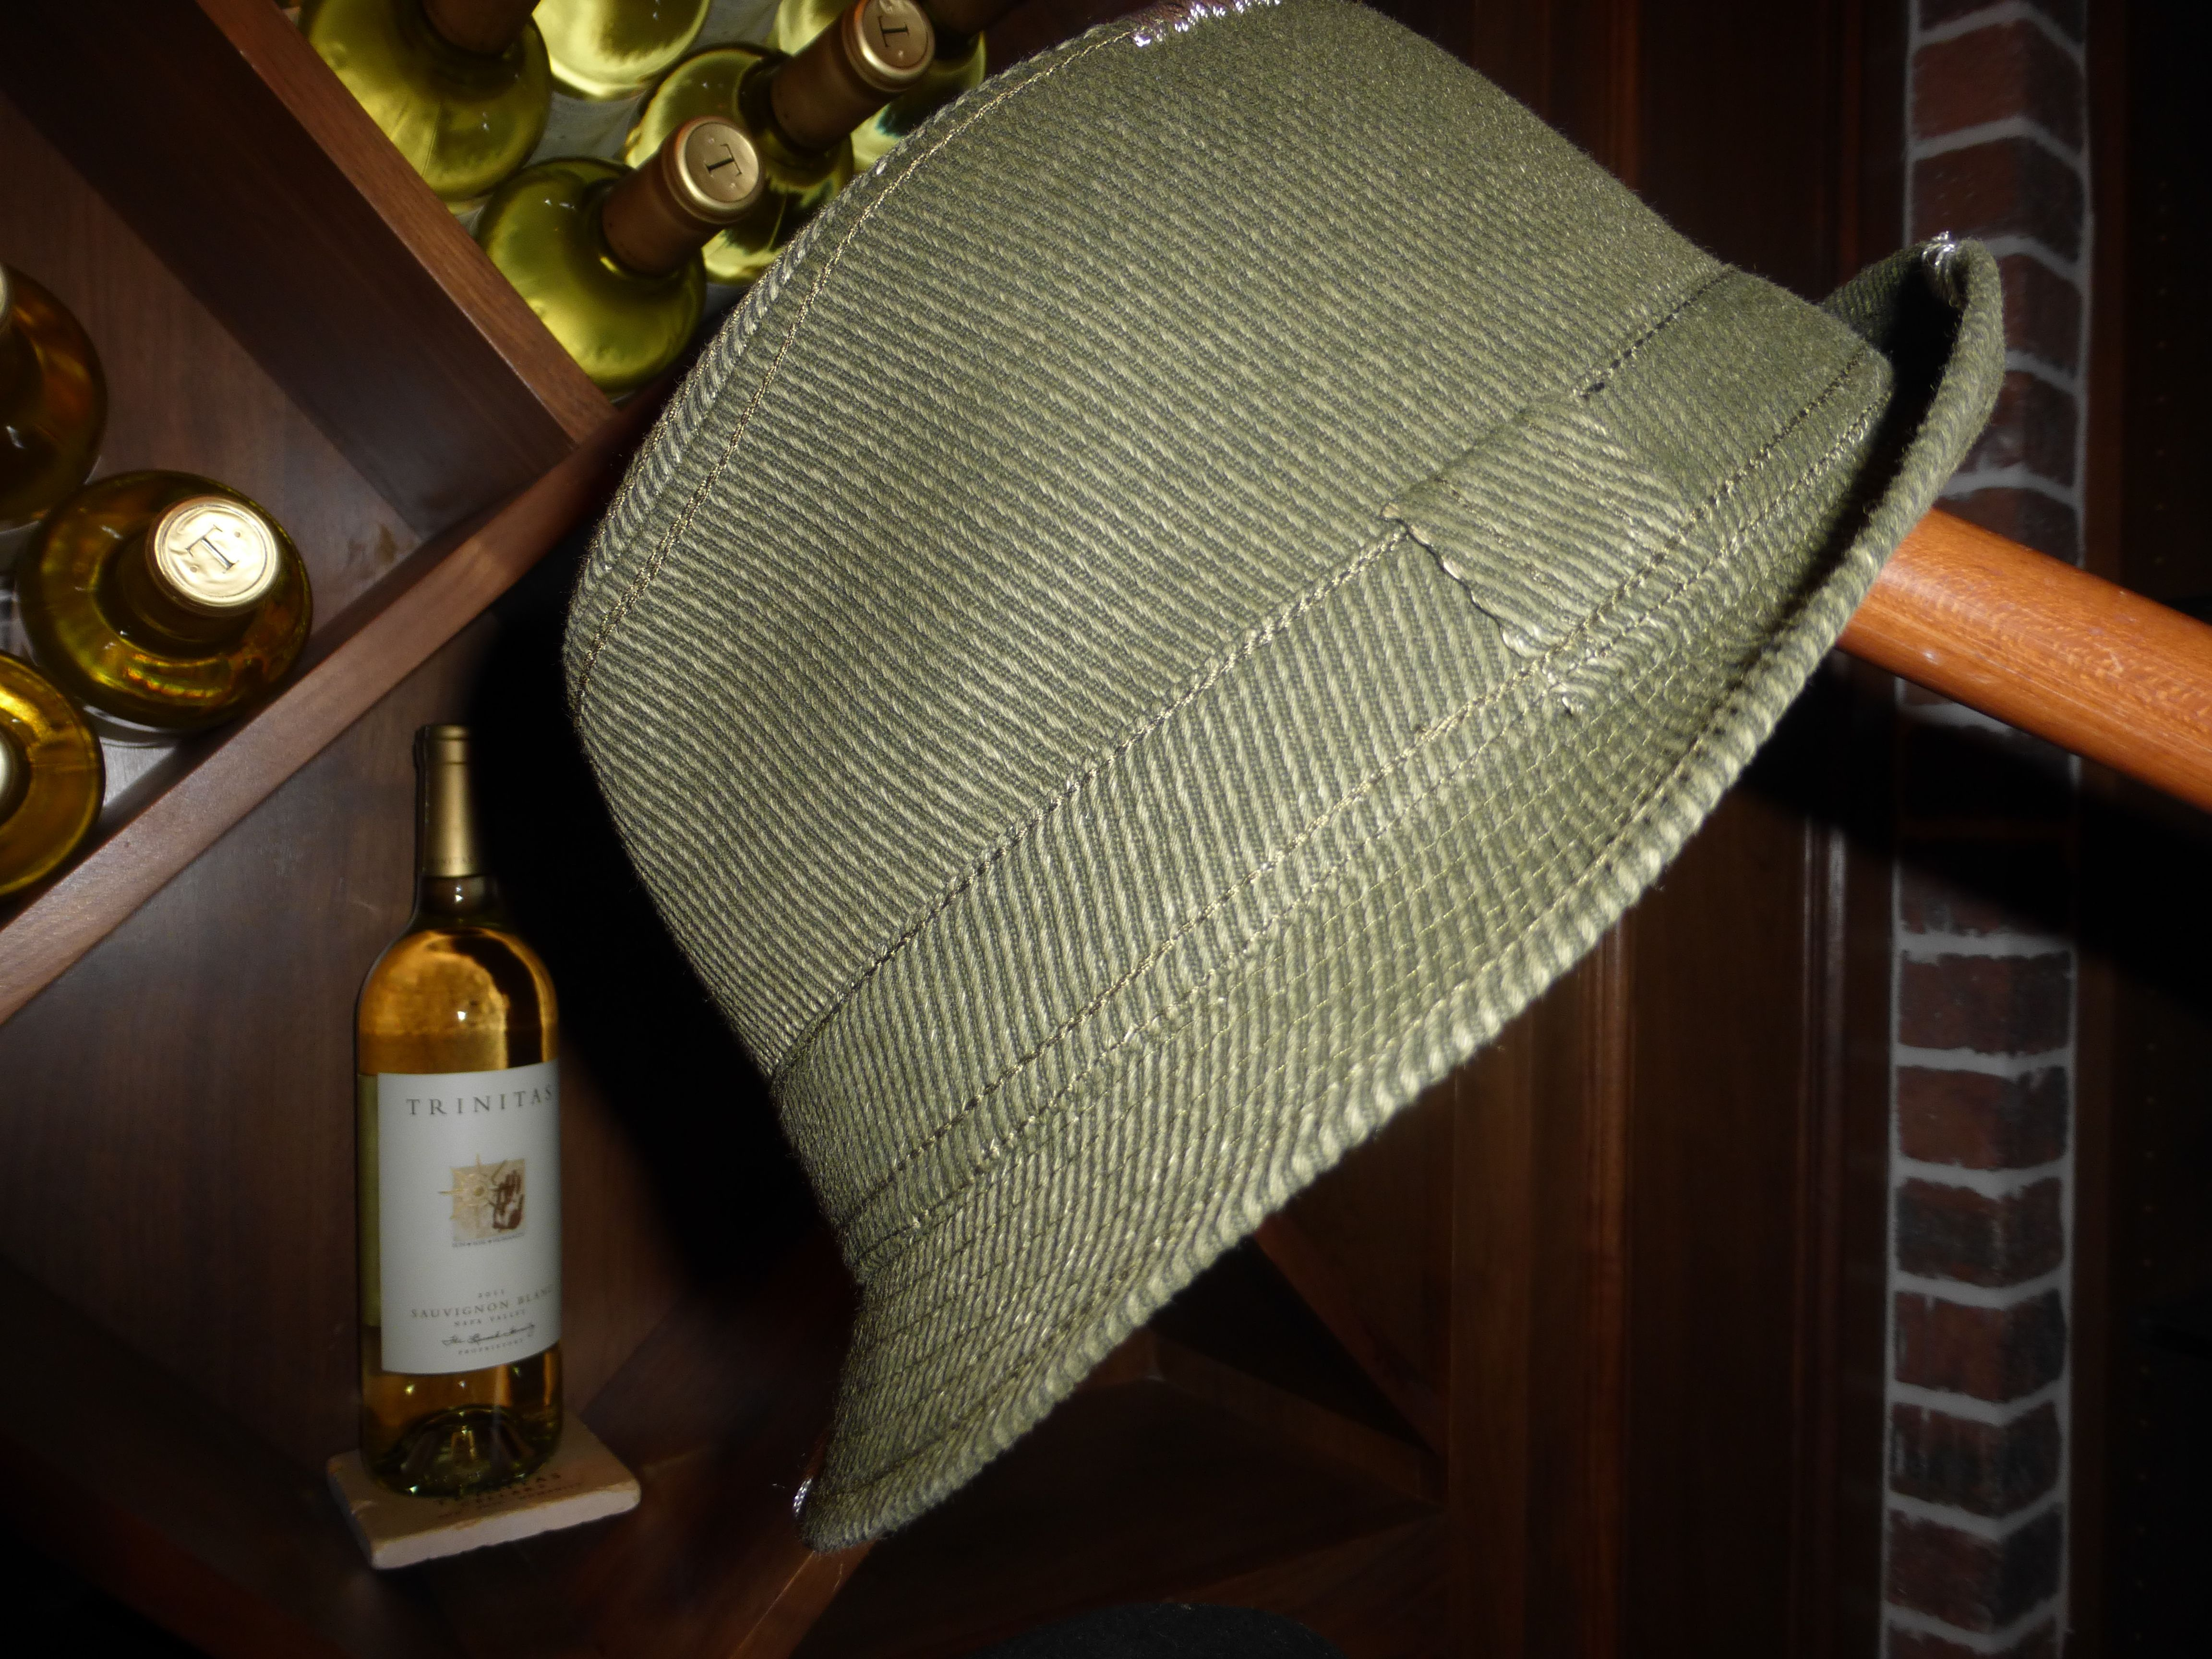 Love these hats in the tasting room at Trinitas Cellars! One stop shopping!